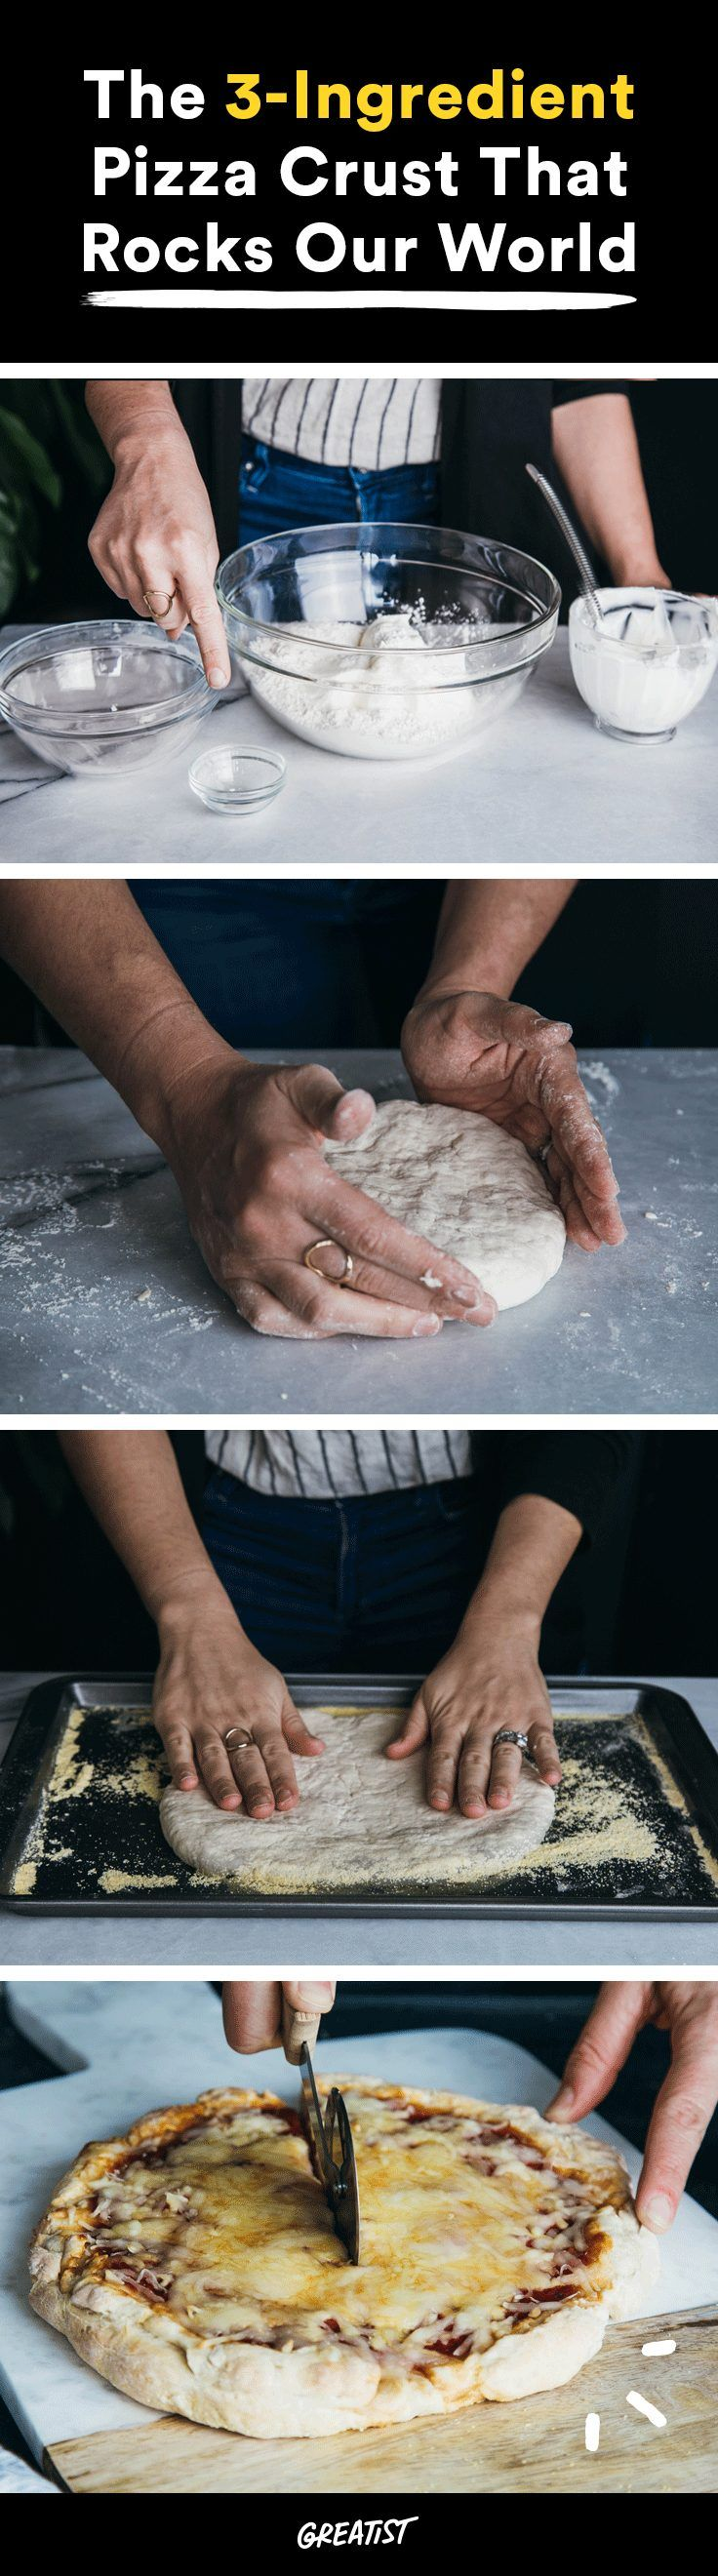 Ain't no party like a pizza party. #greatist https://greatist.com/eat/pizza-crust-recipe-with-3-ingredients